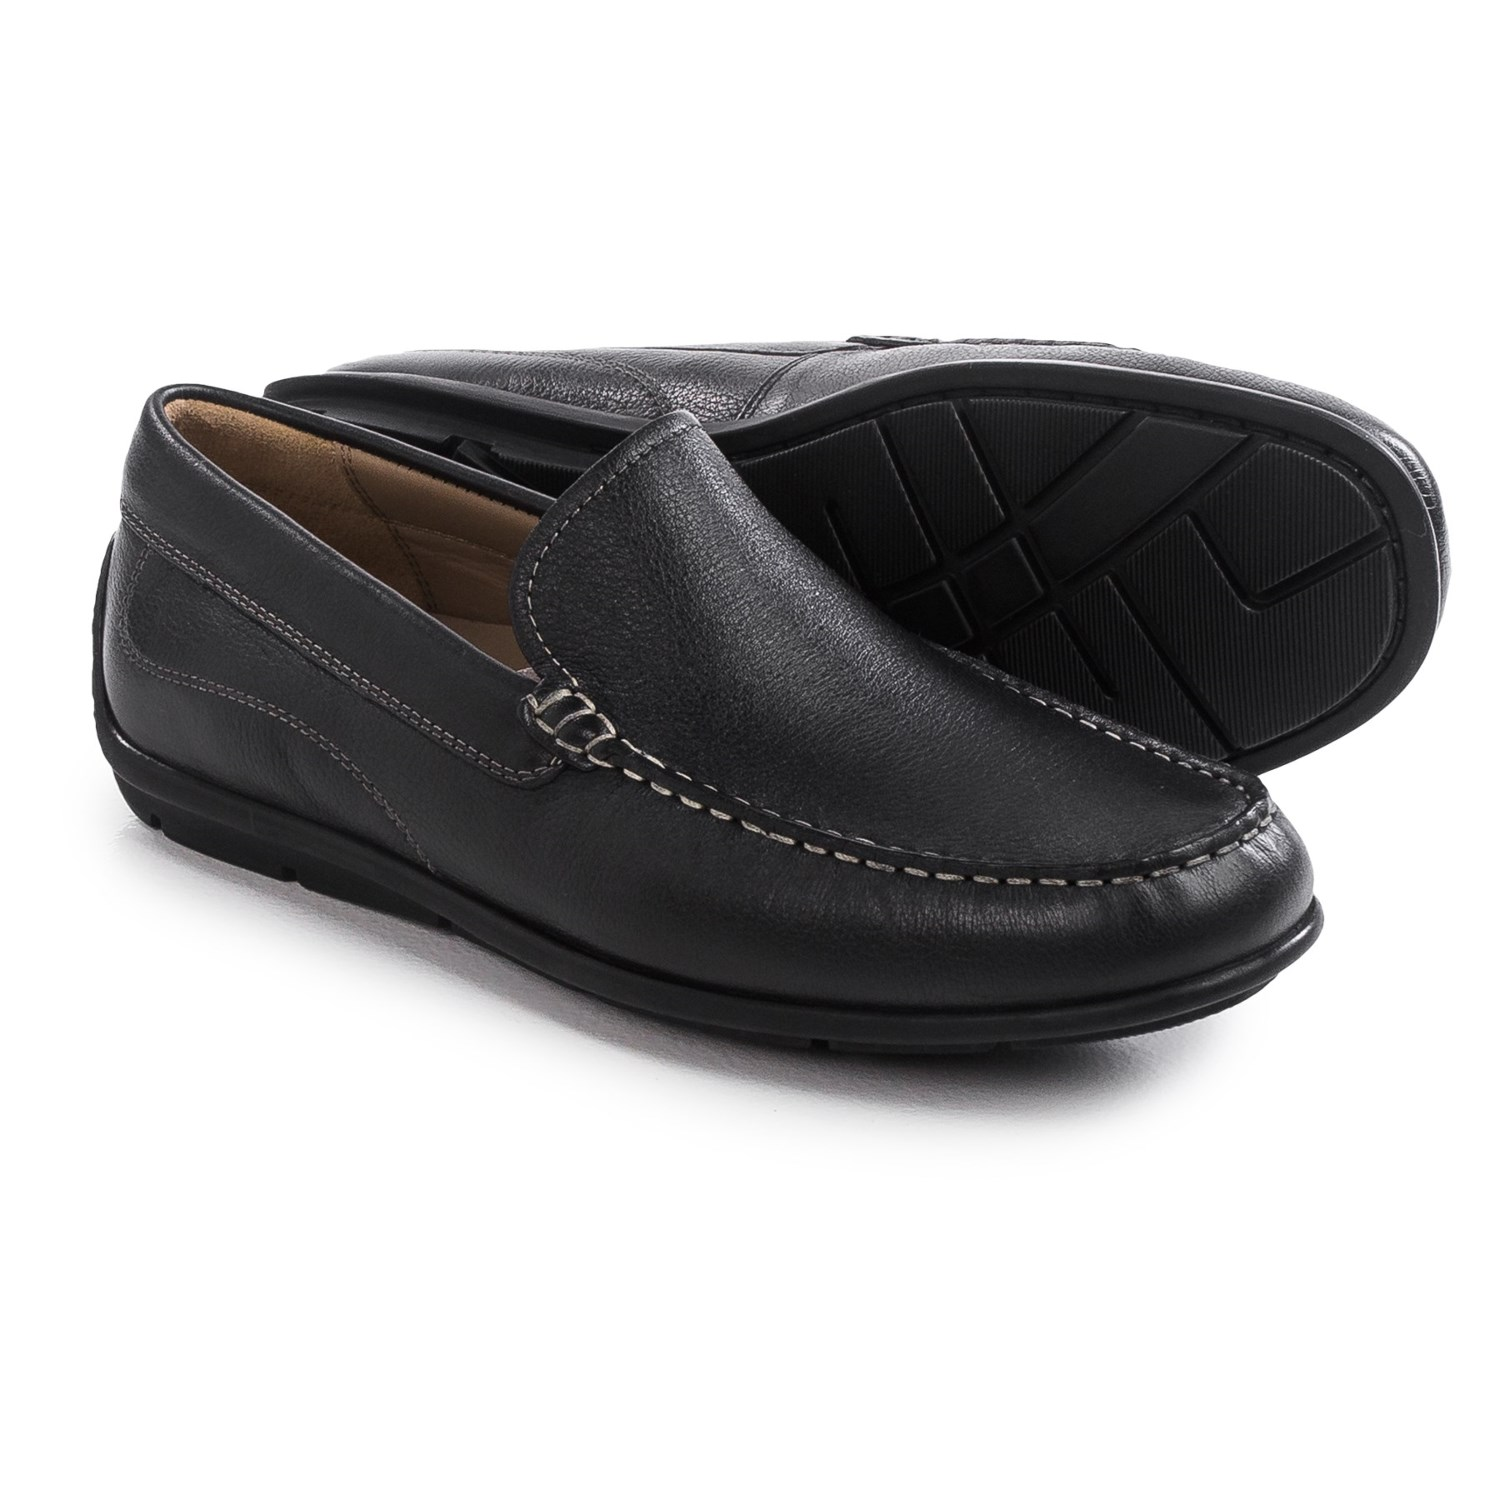 Ecco Black Slip On Shoes